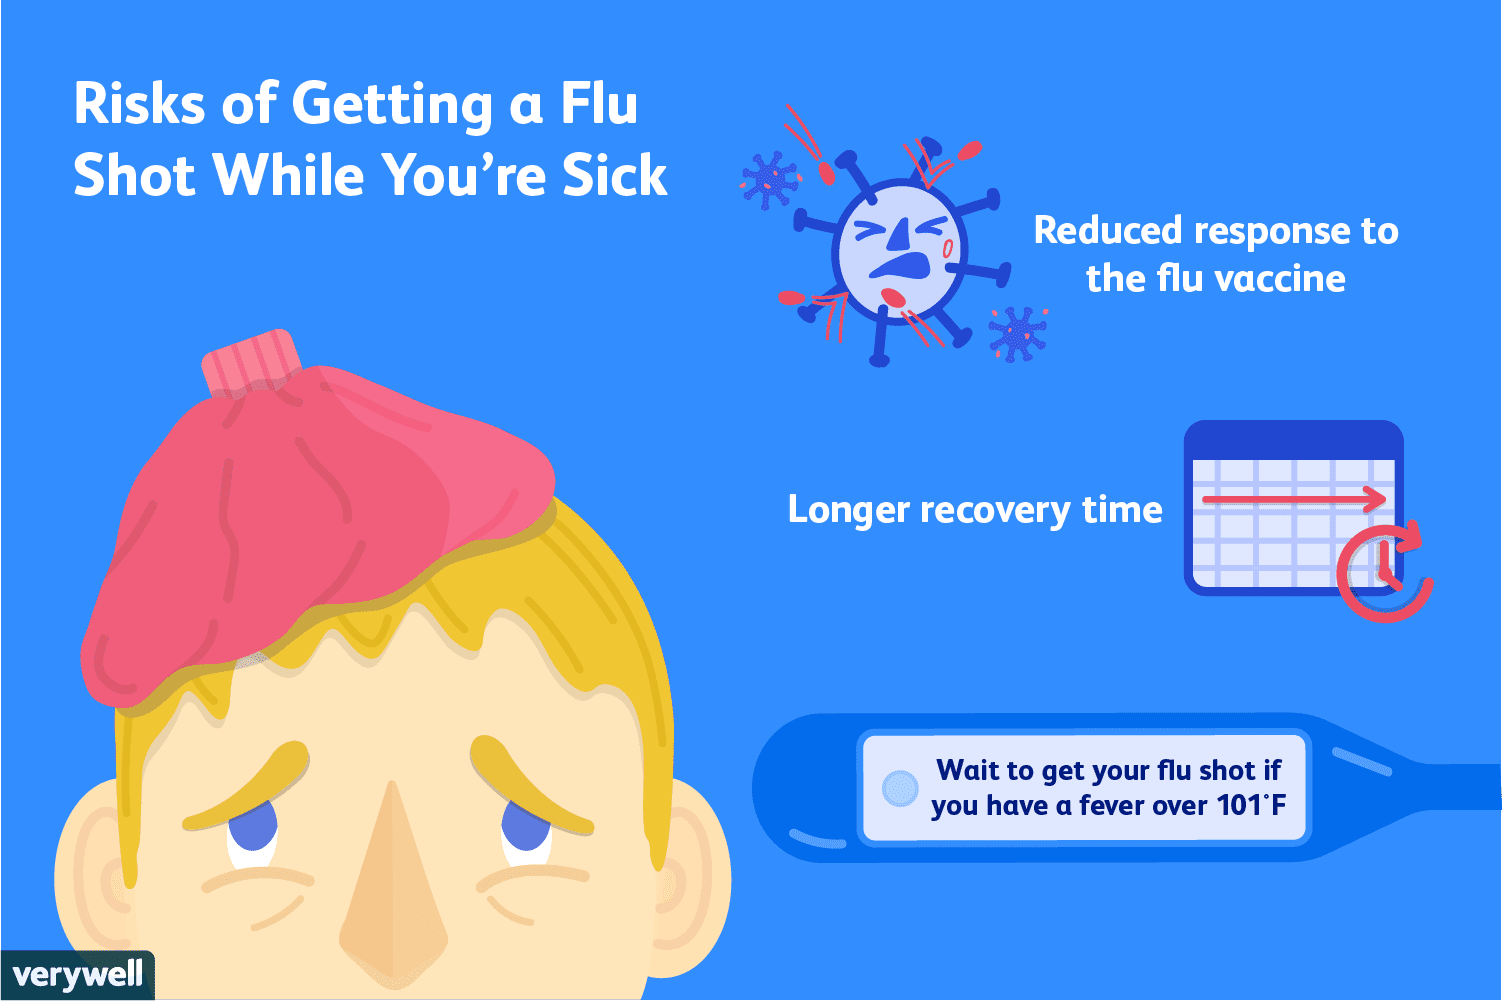 Can I Get A Flu Shot While Sick?